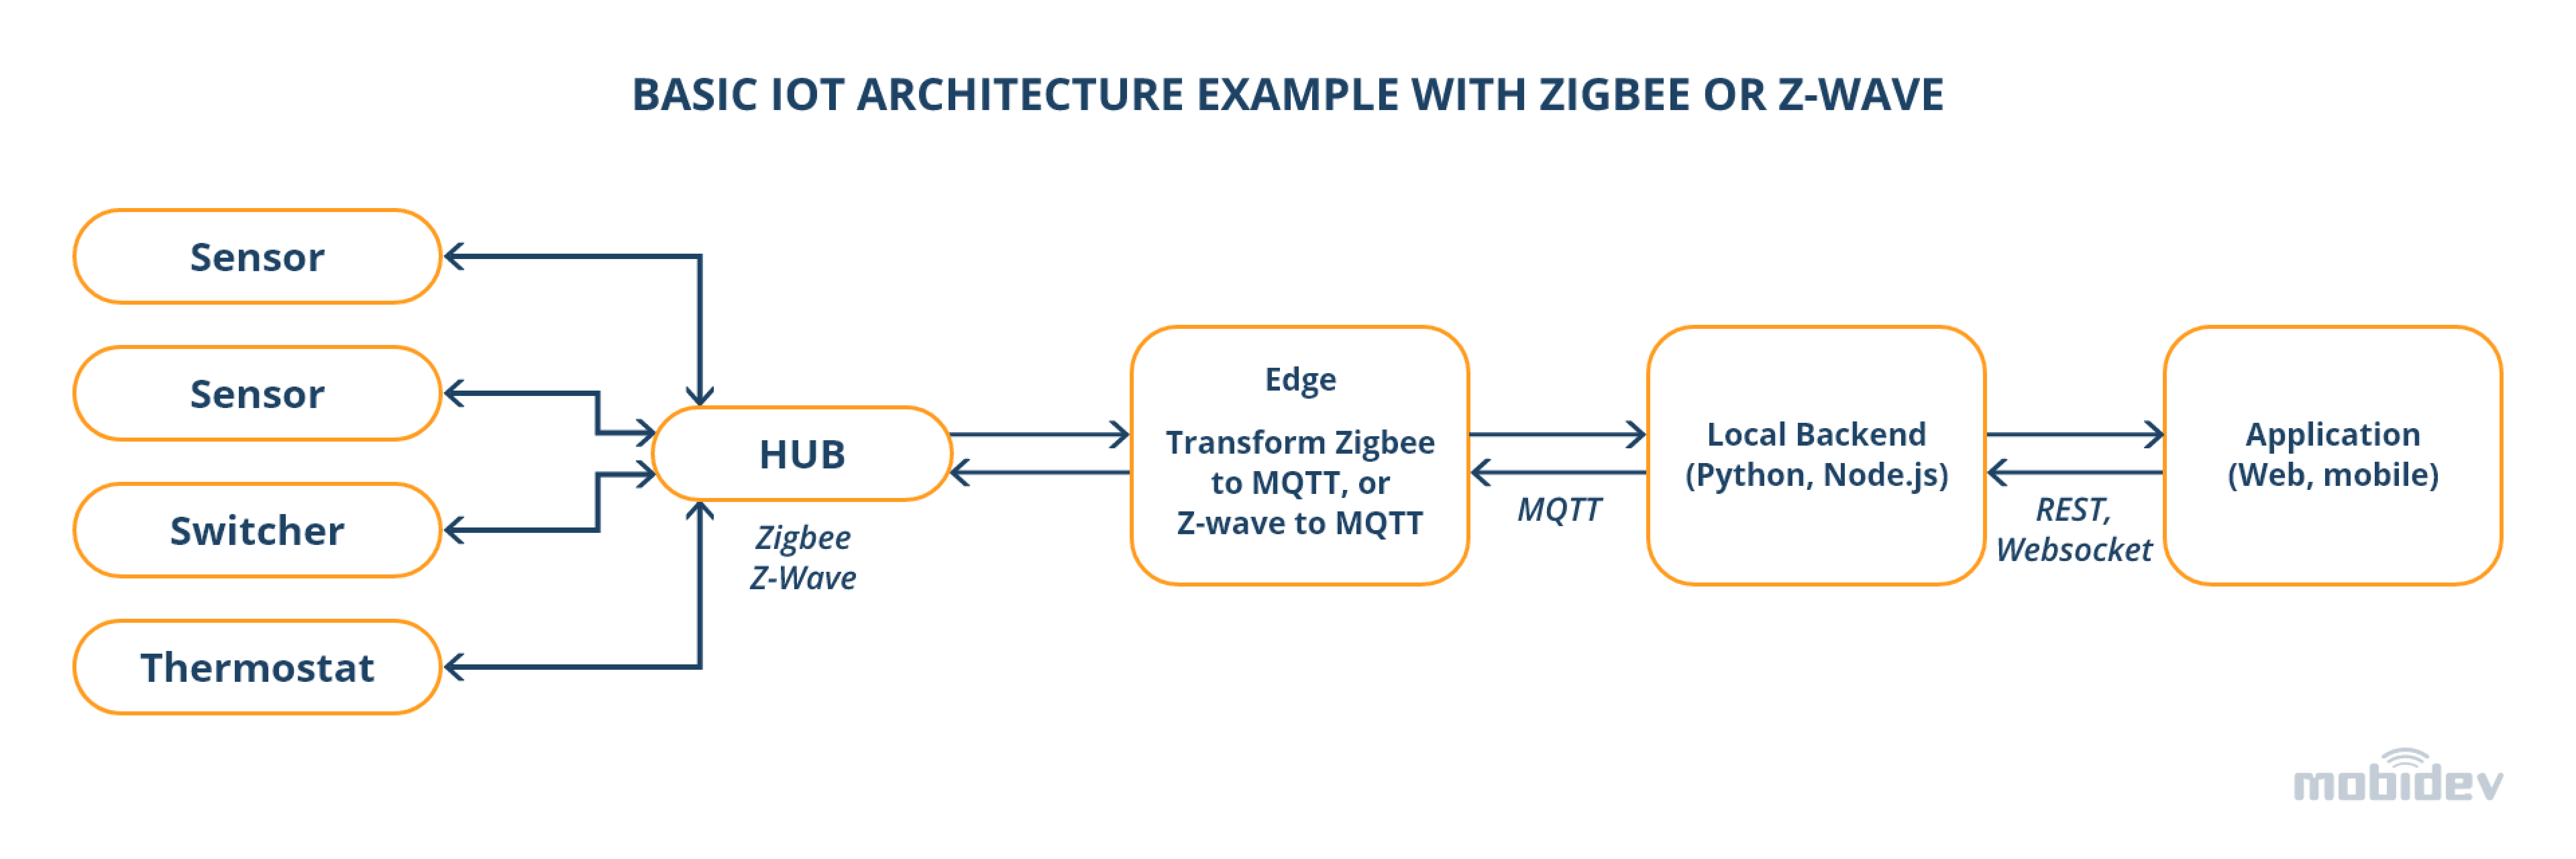 Basic IoT Architecture Example With Zigbee or Z-Wave